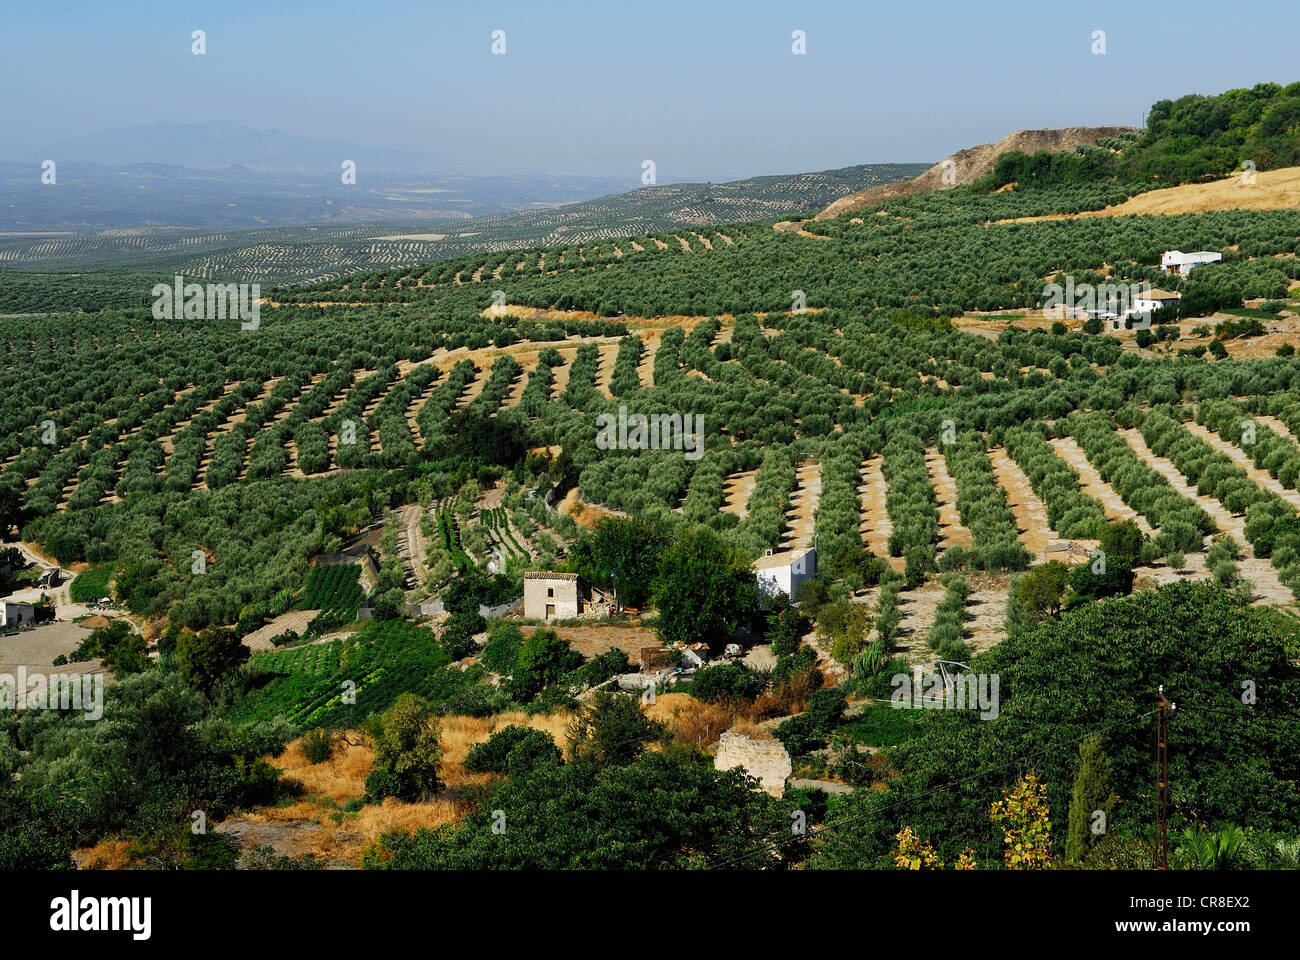 Spain, Andalusia, province of Jaen, Ubeda, city UNESCO World Heritage, olive trees field Stock Photo